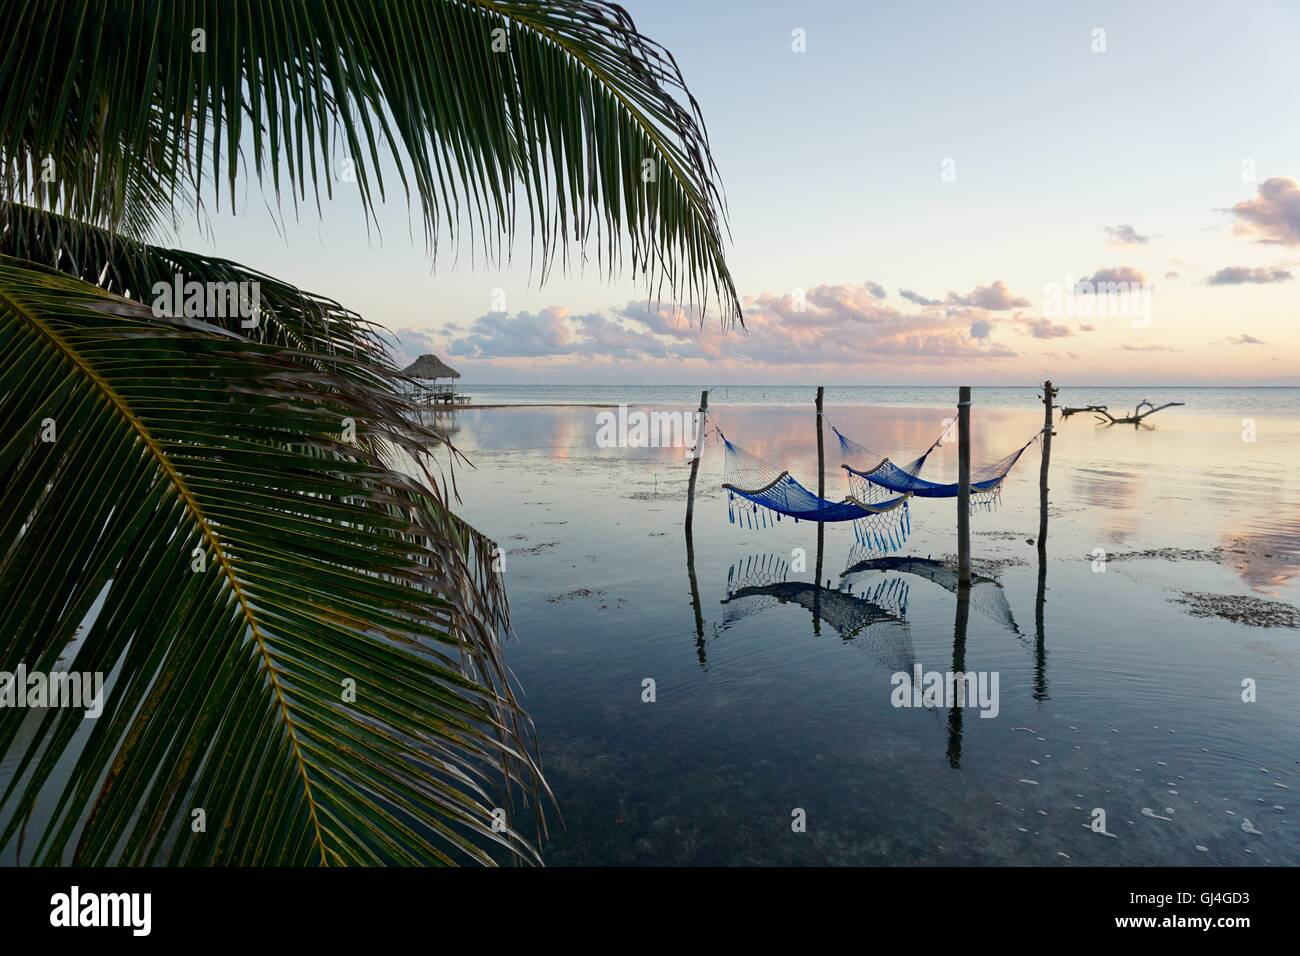 Hammocks on the ocean with reflection on the water and light pink clouds at the horizon. Photographed in Belize. - Stock Image